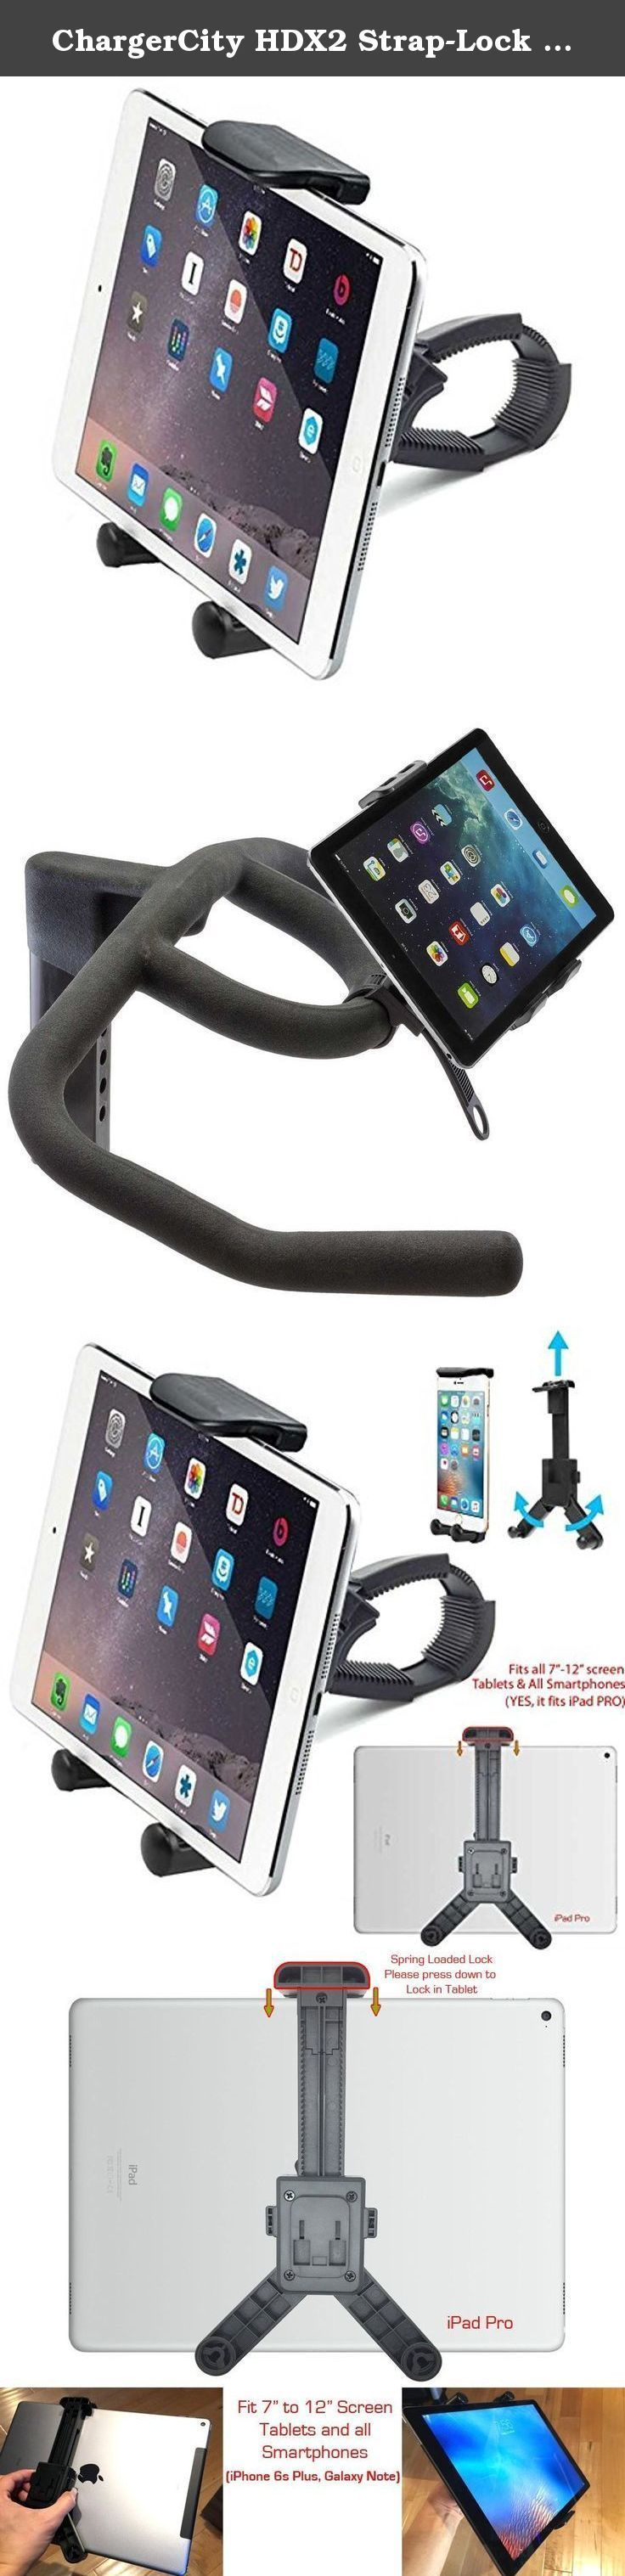 Awesome LG G5 2017 ChargerCity HDX2 Strap Lock Mount for Bicycle Treadmill Exercise Spin